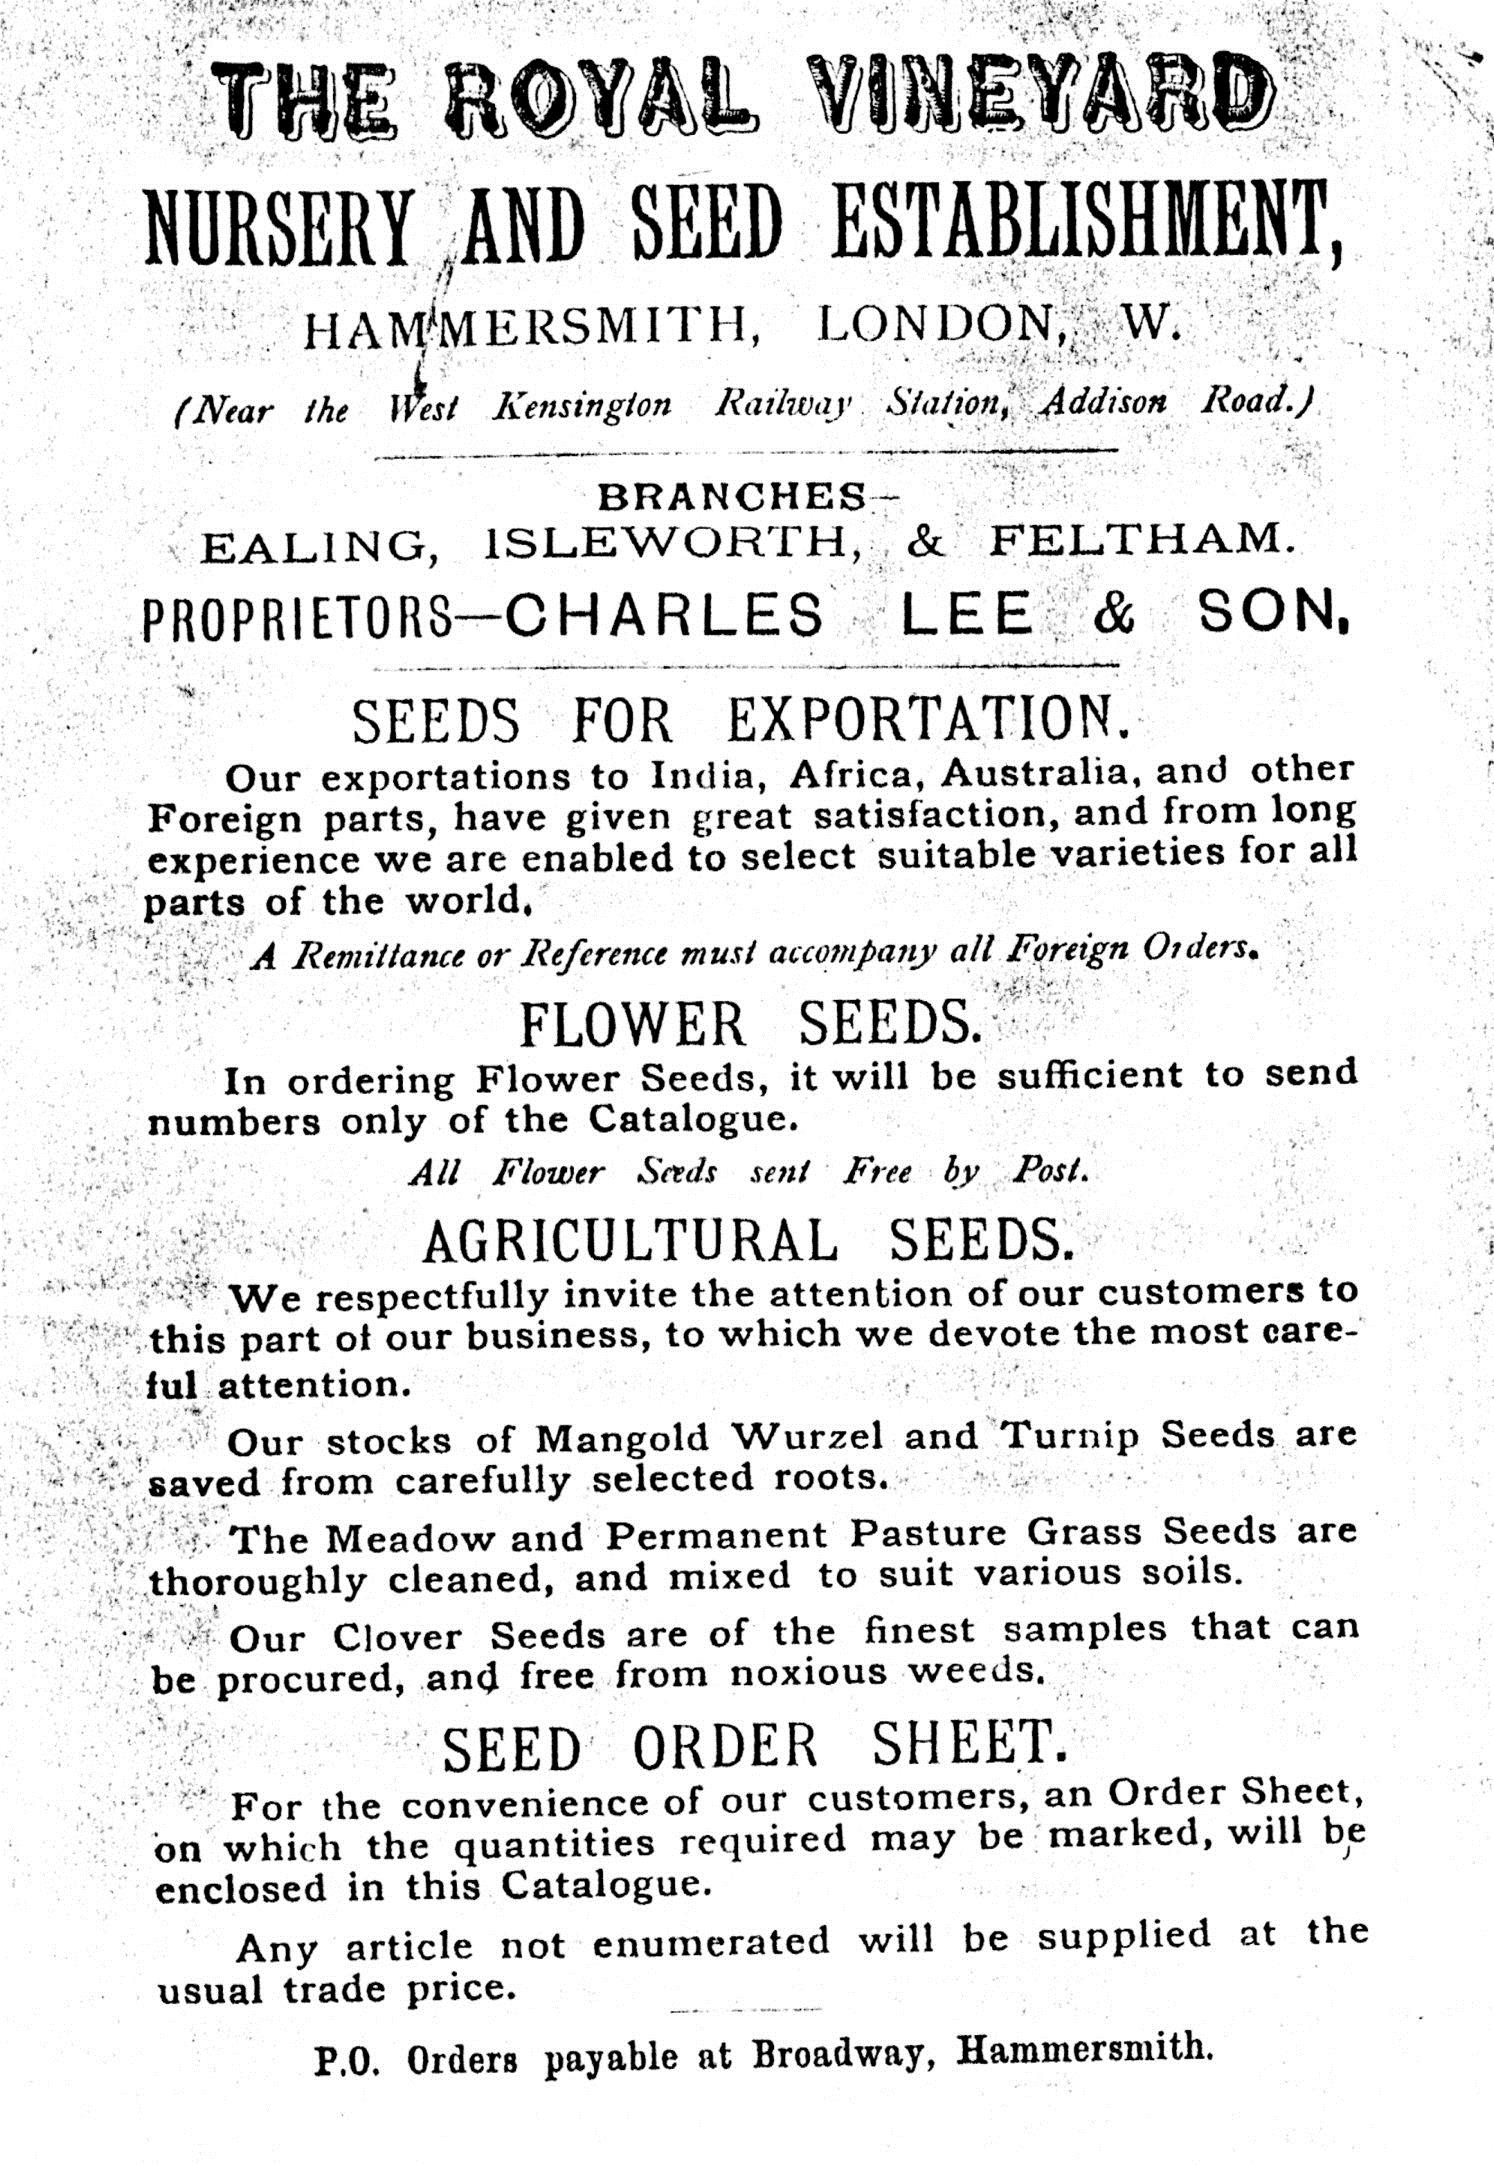 Charles Lee and Son's catalogue